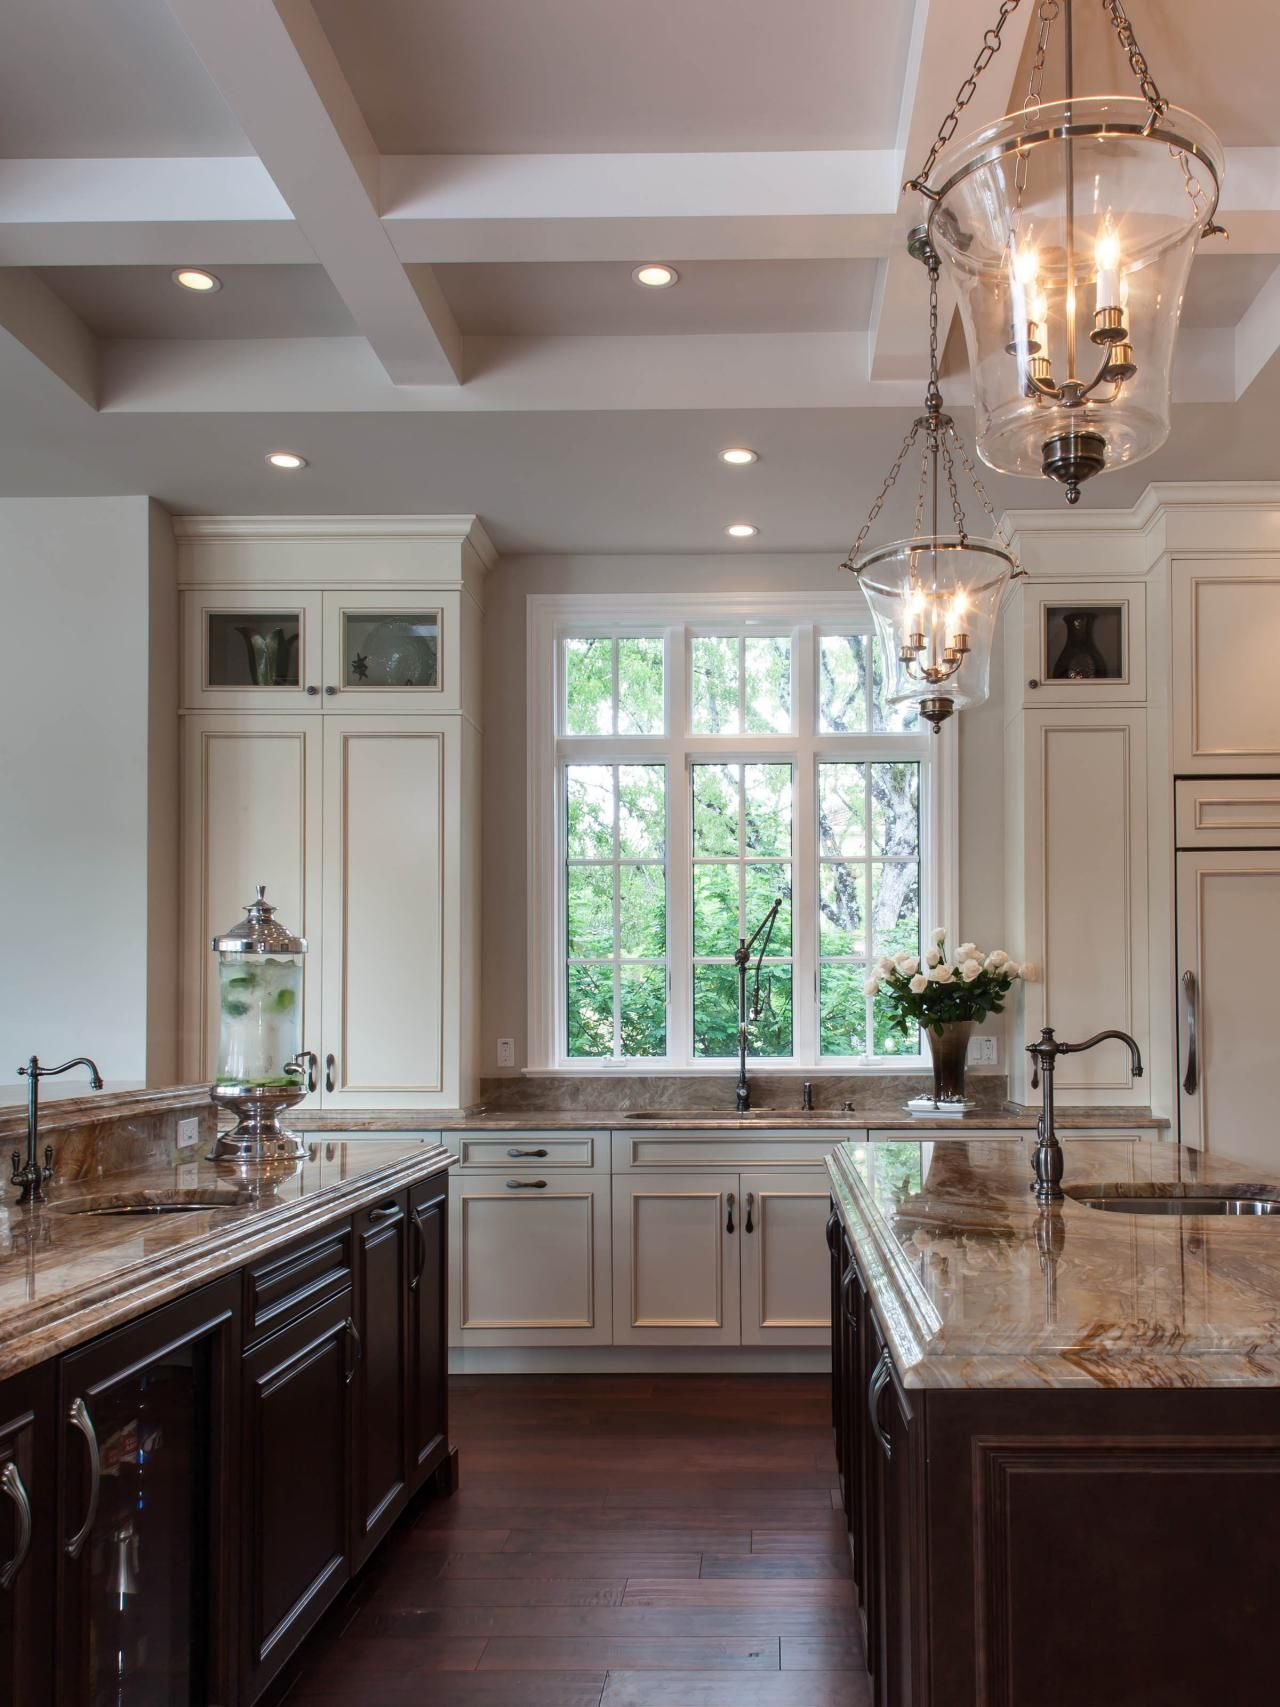 Installing A Coffered Ceiling In Your House Ceilings Beams and